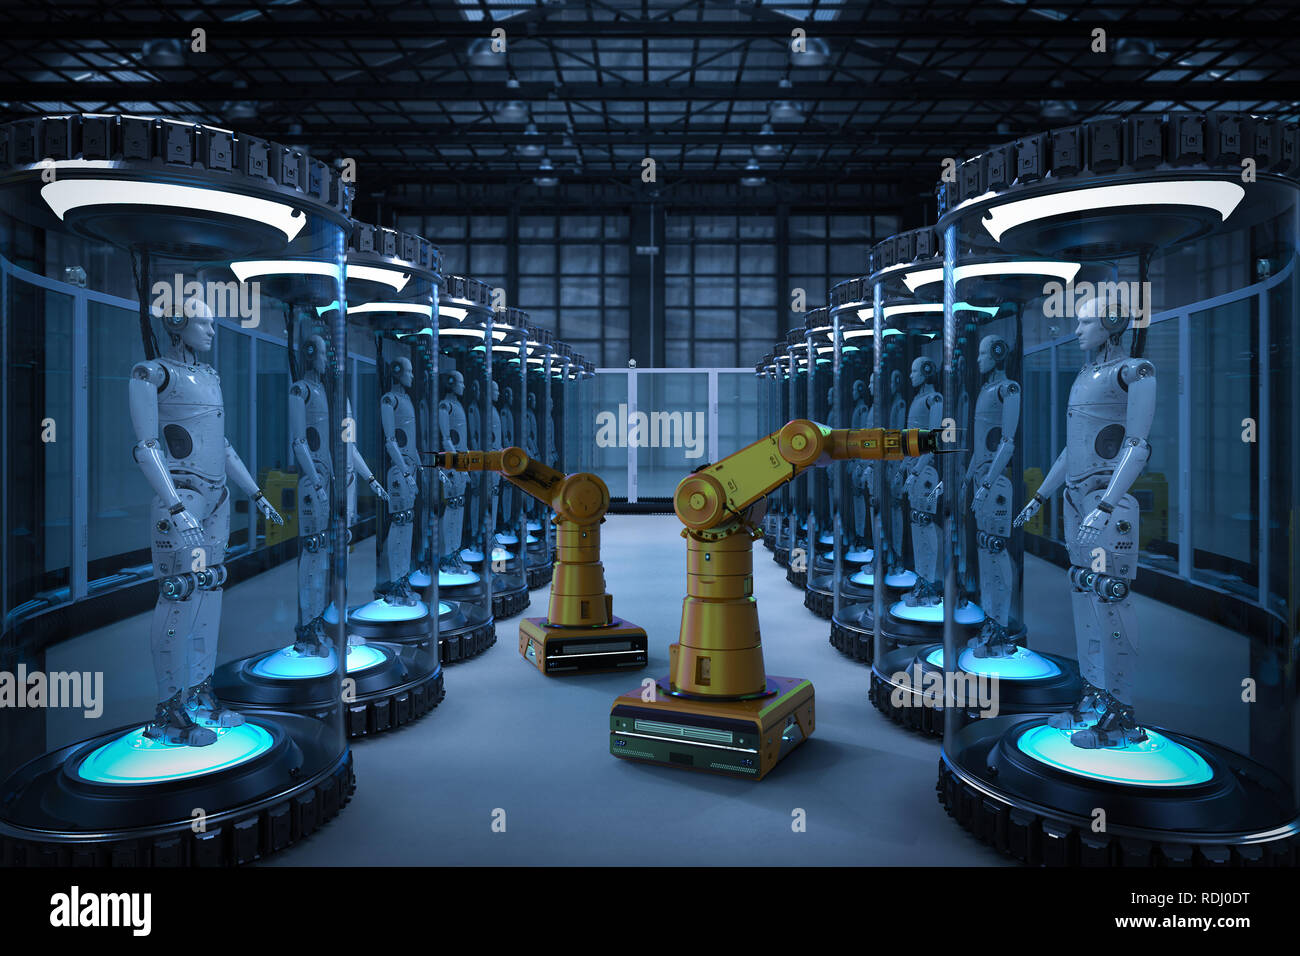 Robot production line with 3d rendering robots in glass capsules - Stock Image